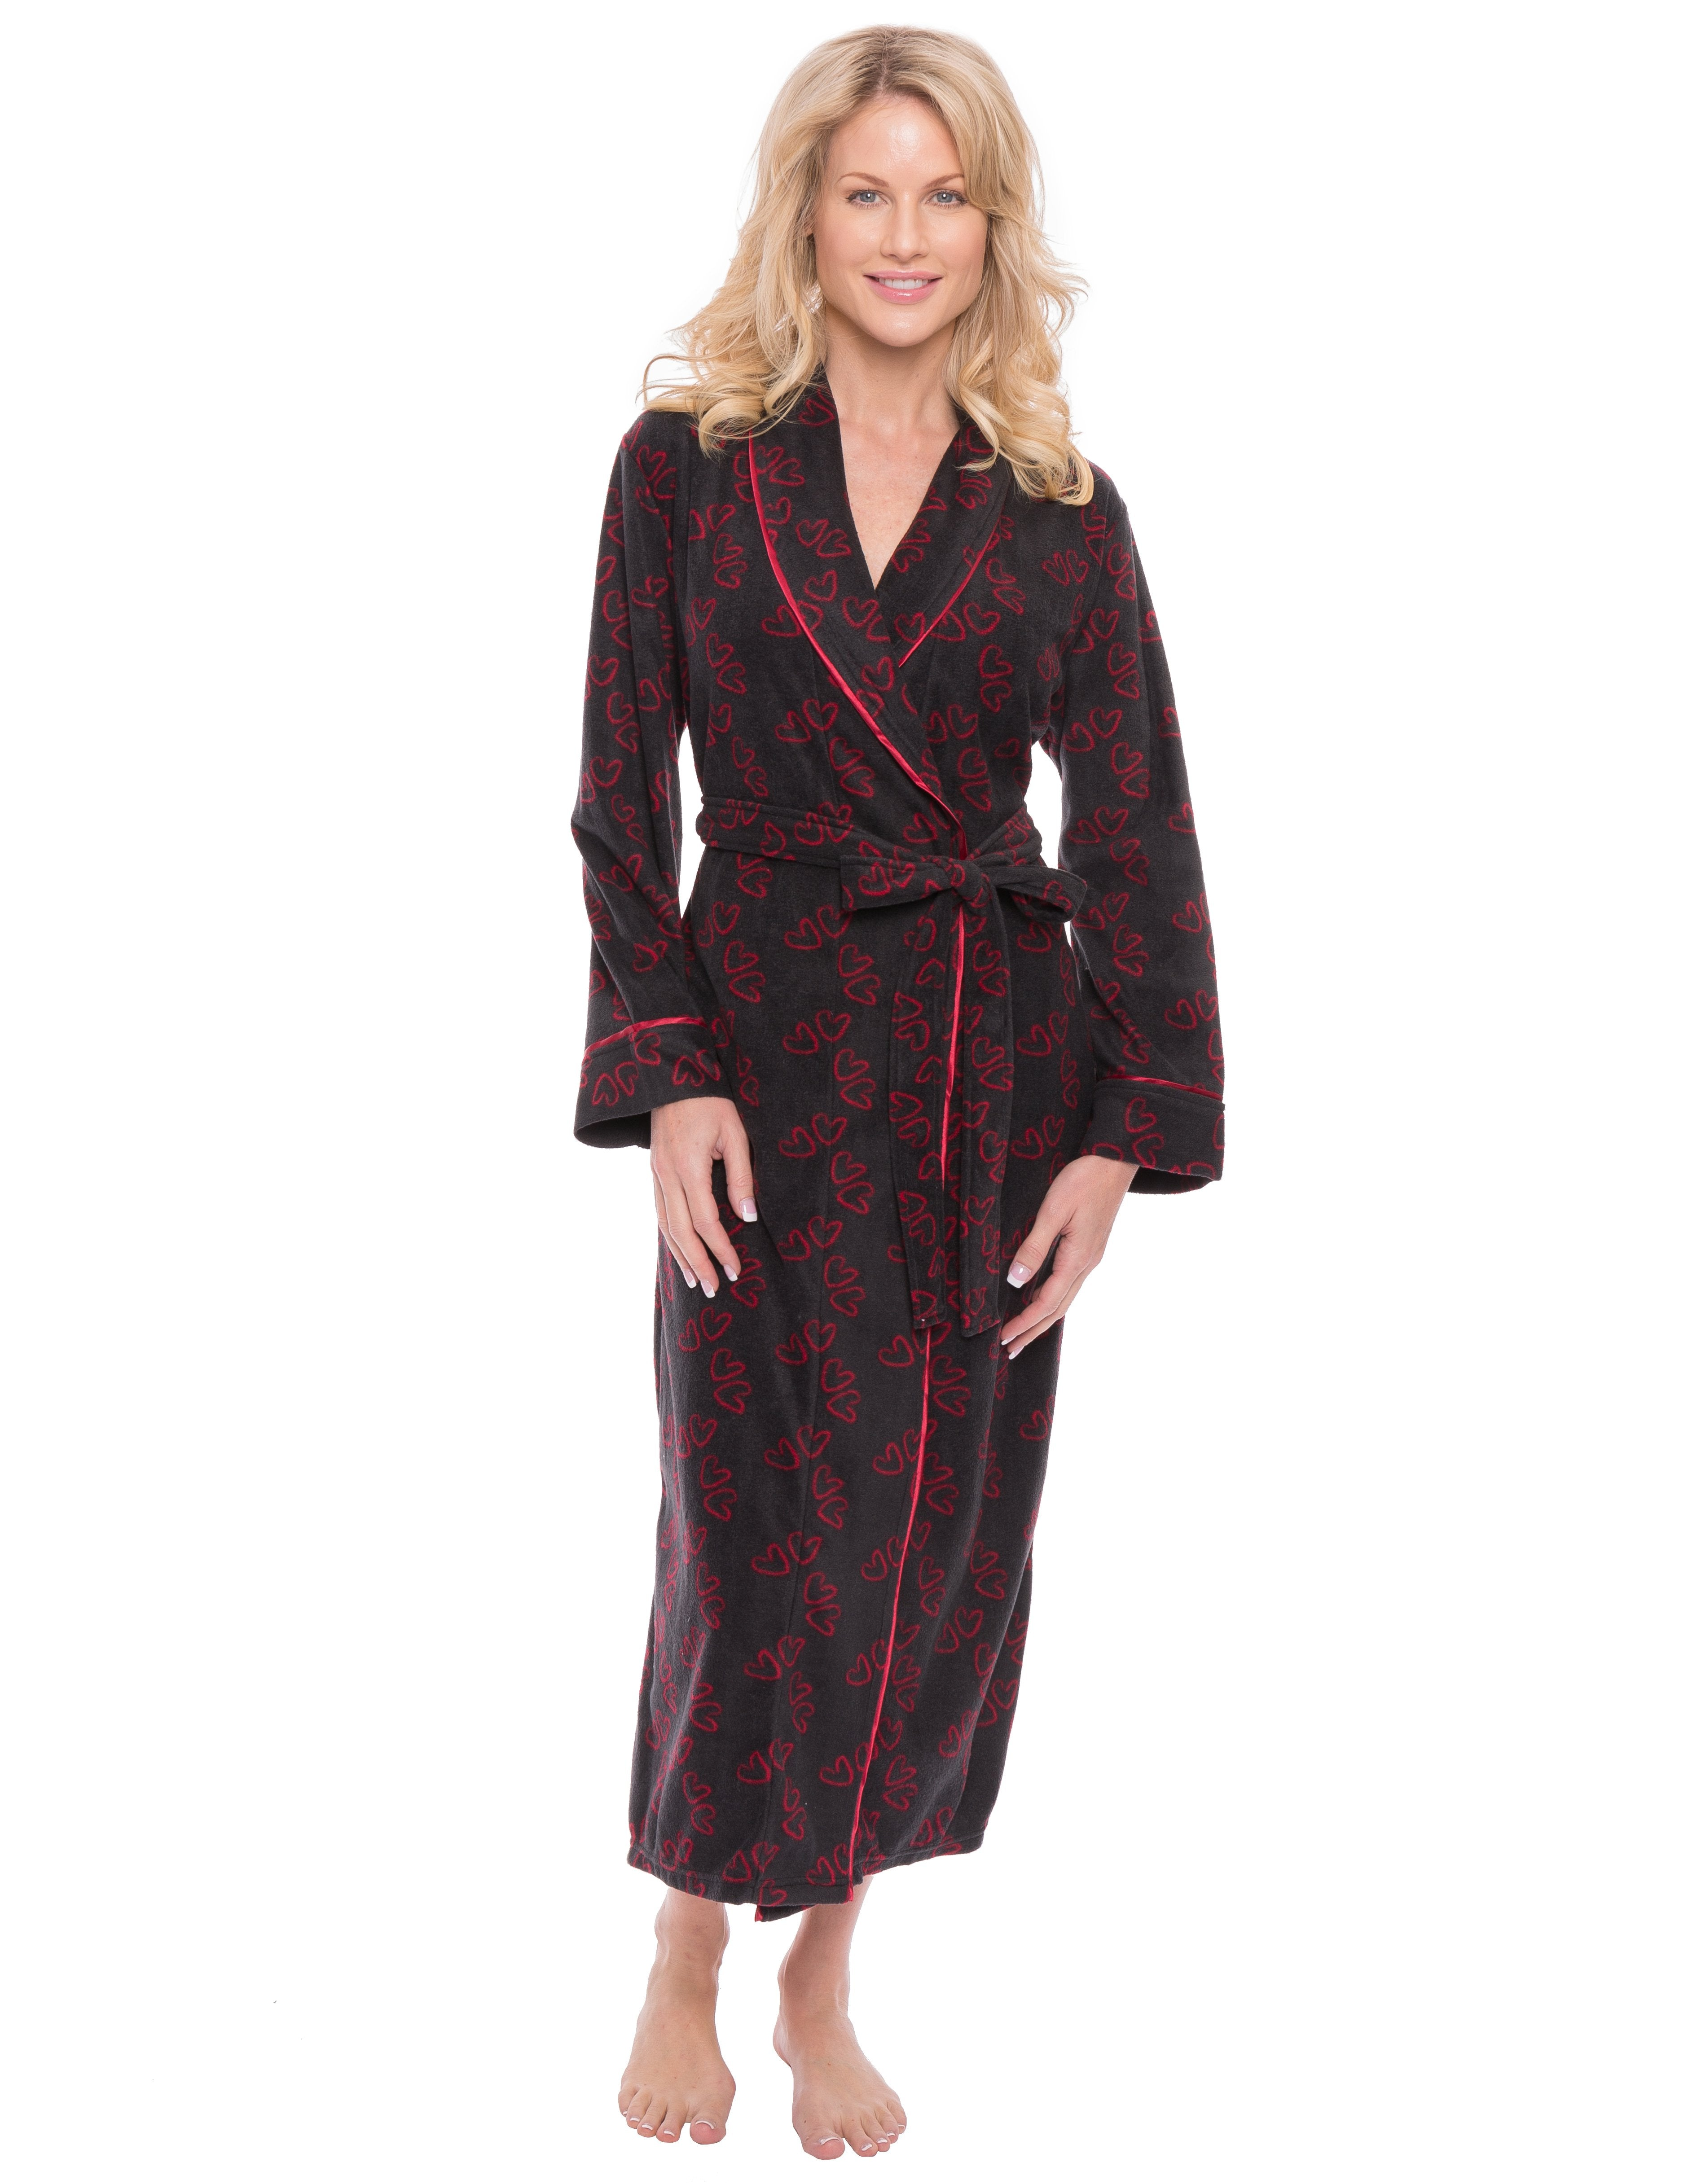 Womens Microfleece Robe - Hearts Black/Red